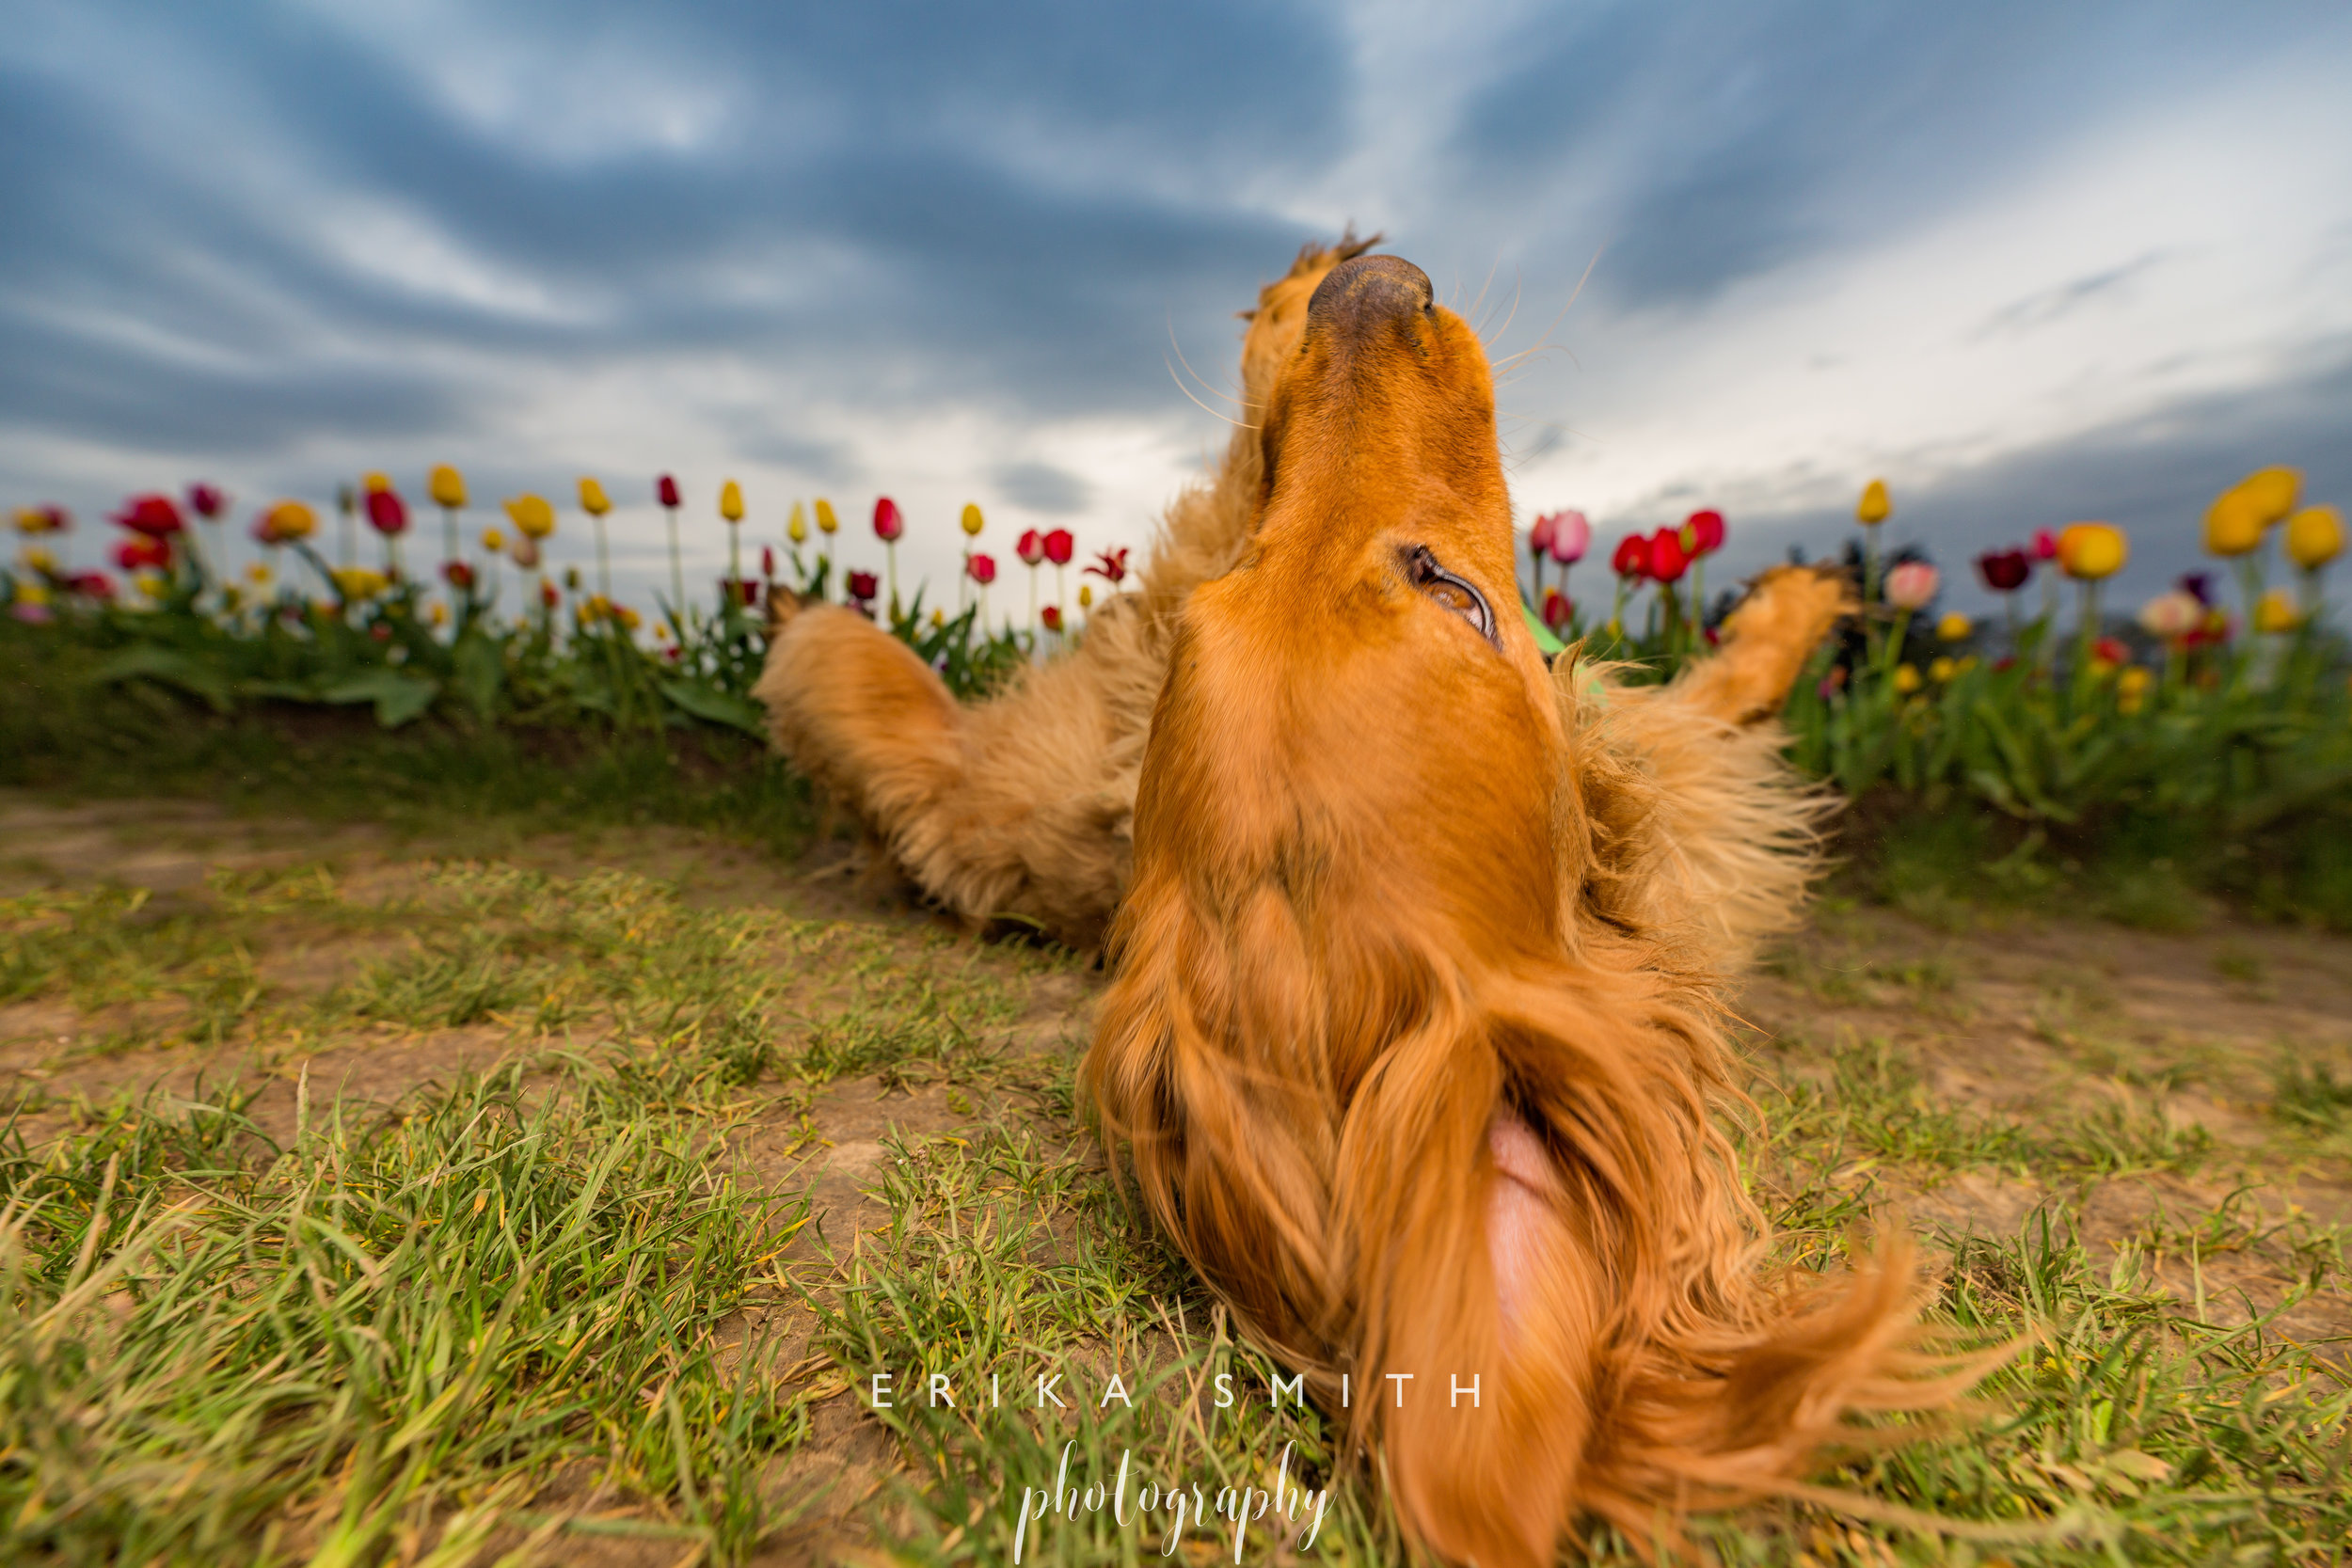 Rolling through the Tulips